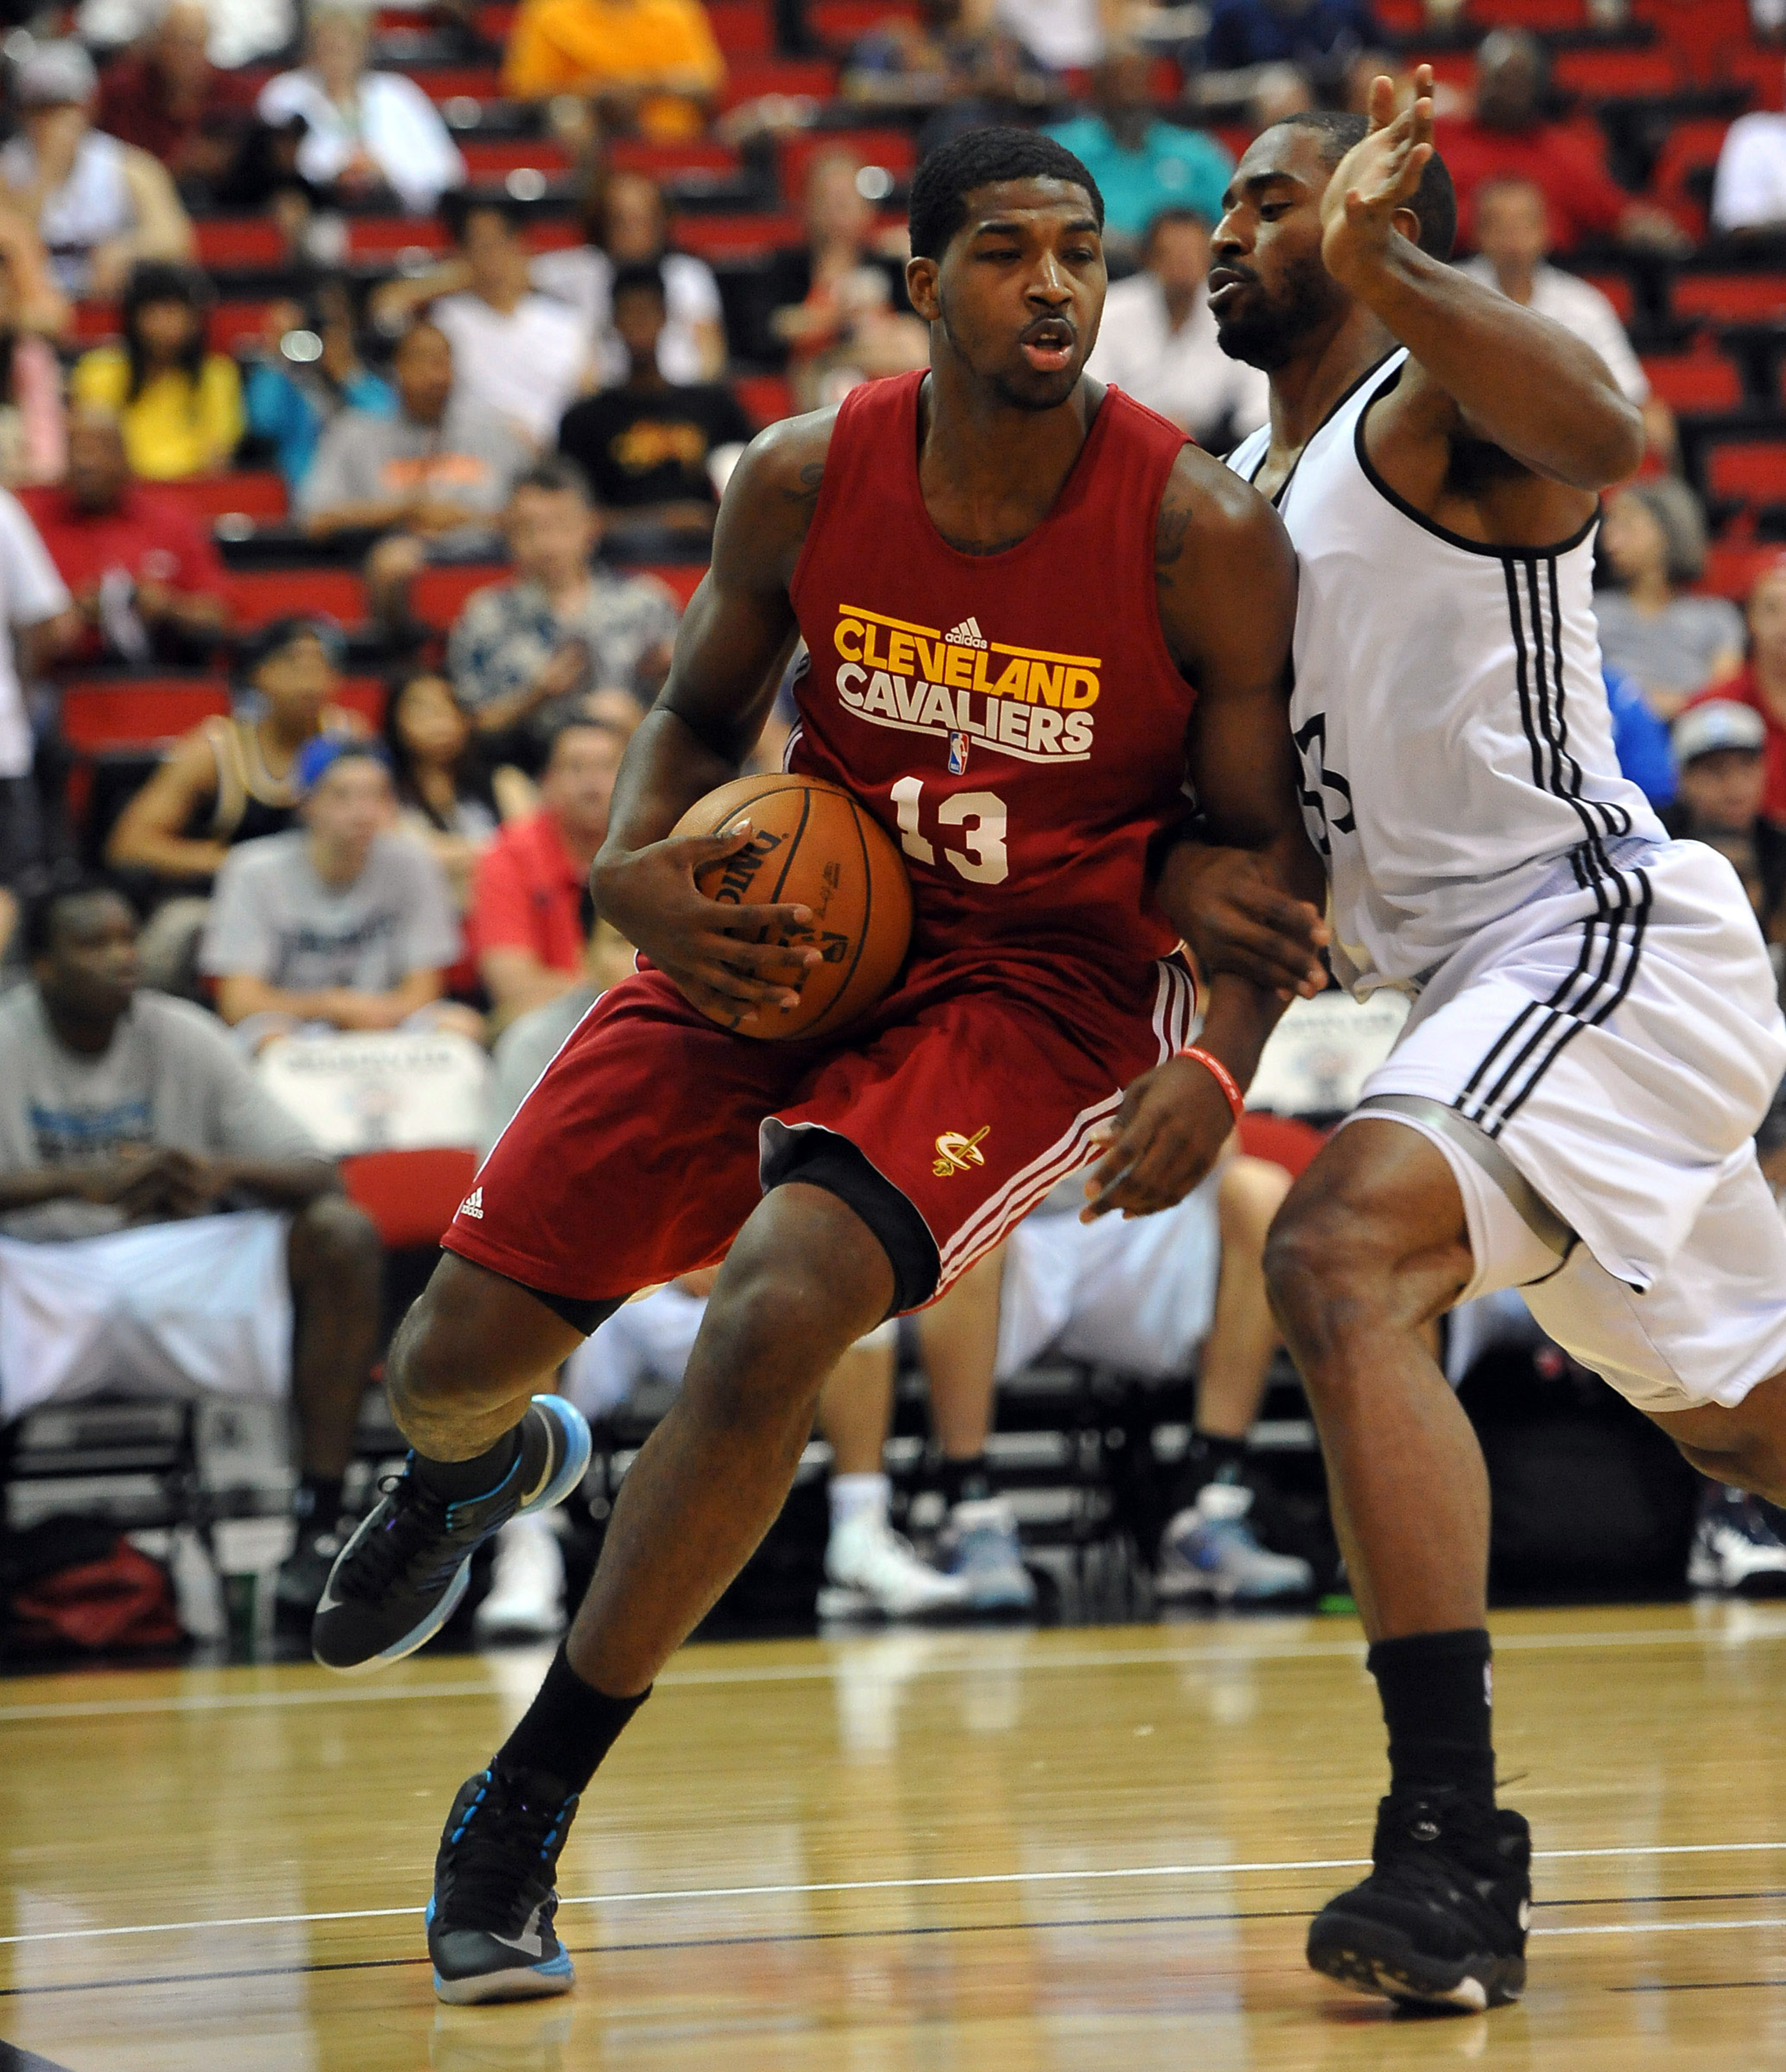 July 19, 2012; Las Vegas, NV, USA; Minnesota Timberwolves forward Mike Harris (33) guards Cleveland Cavaliers forward Tristan Thompson (14) during the first half of the game at the Cox Pavilion. Mandatory Credit: Jayne Kamin-Oncea-US PRESSWIRE